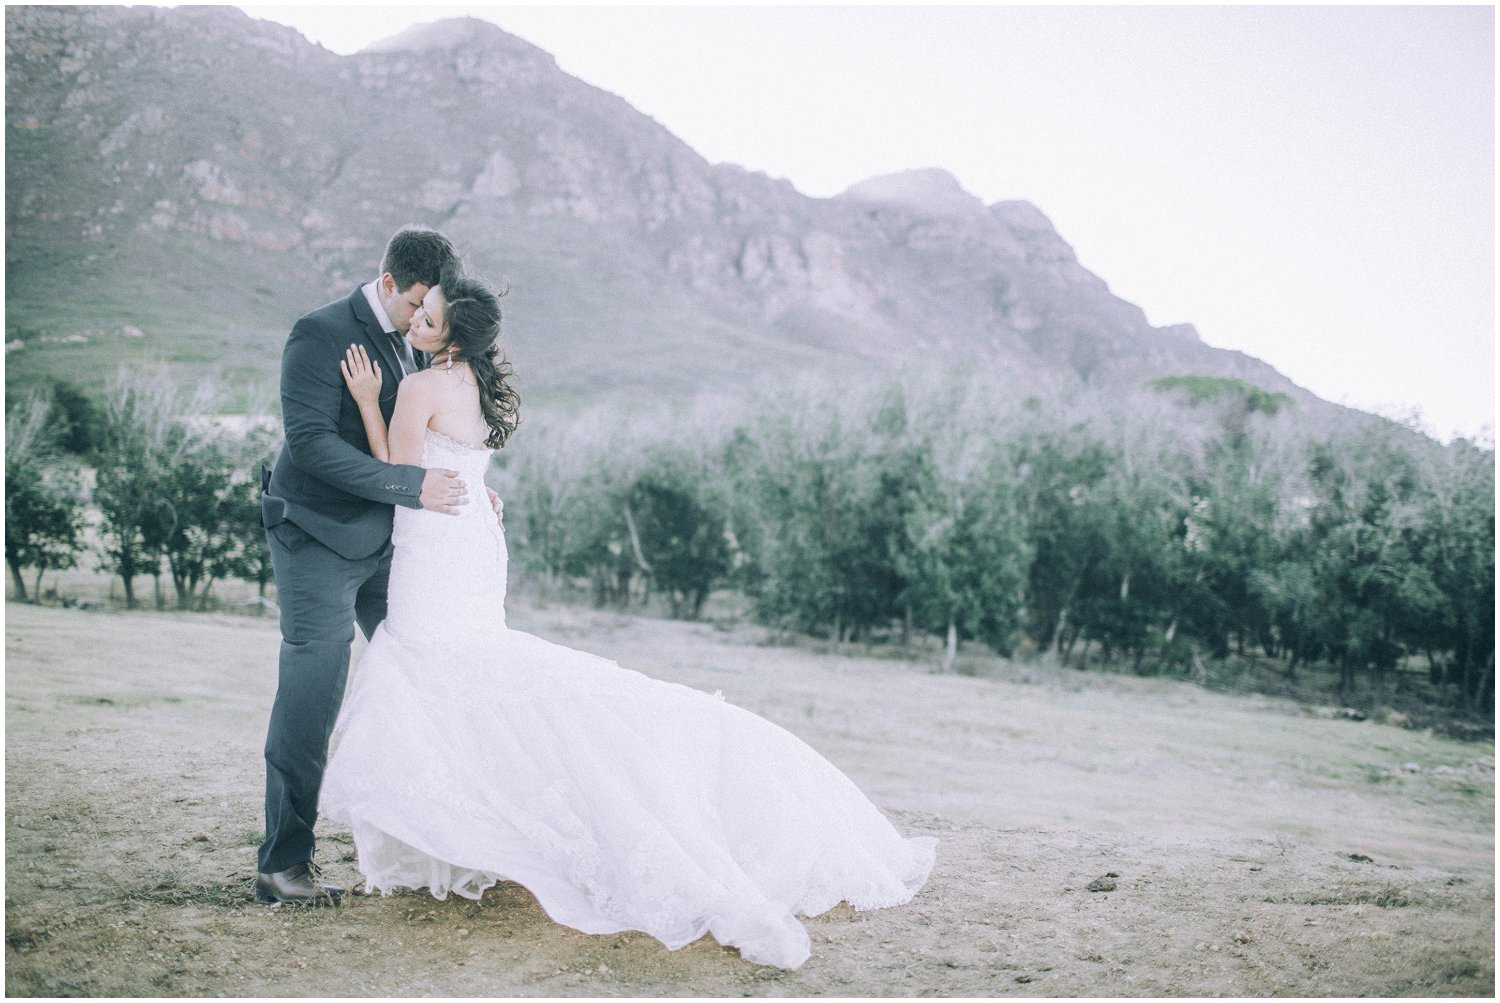 Top Artistic Creative Documentary Wedding Photographer Cape Town South Africa Rue Kruger_0368.jpg